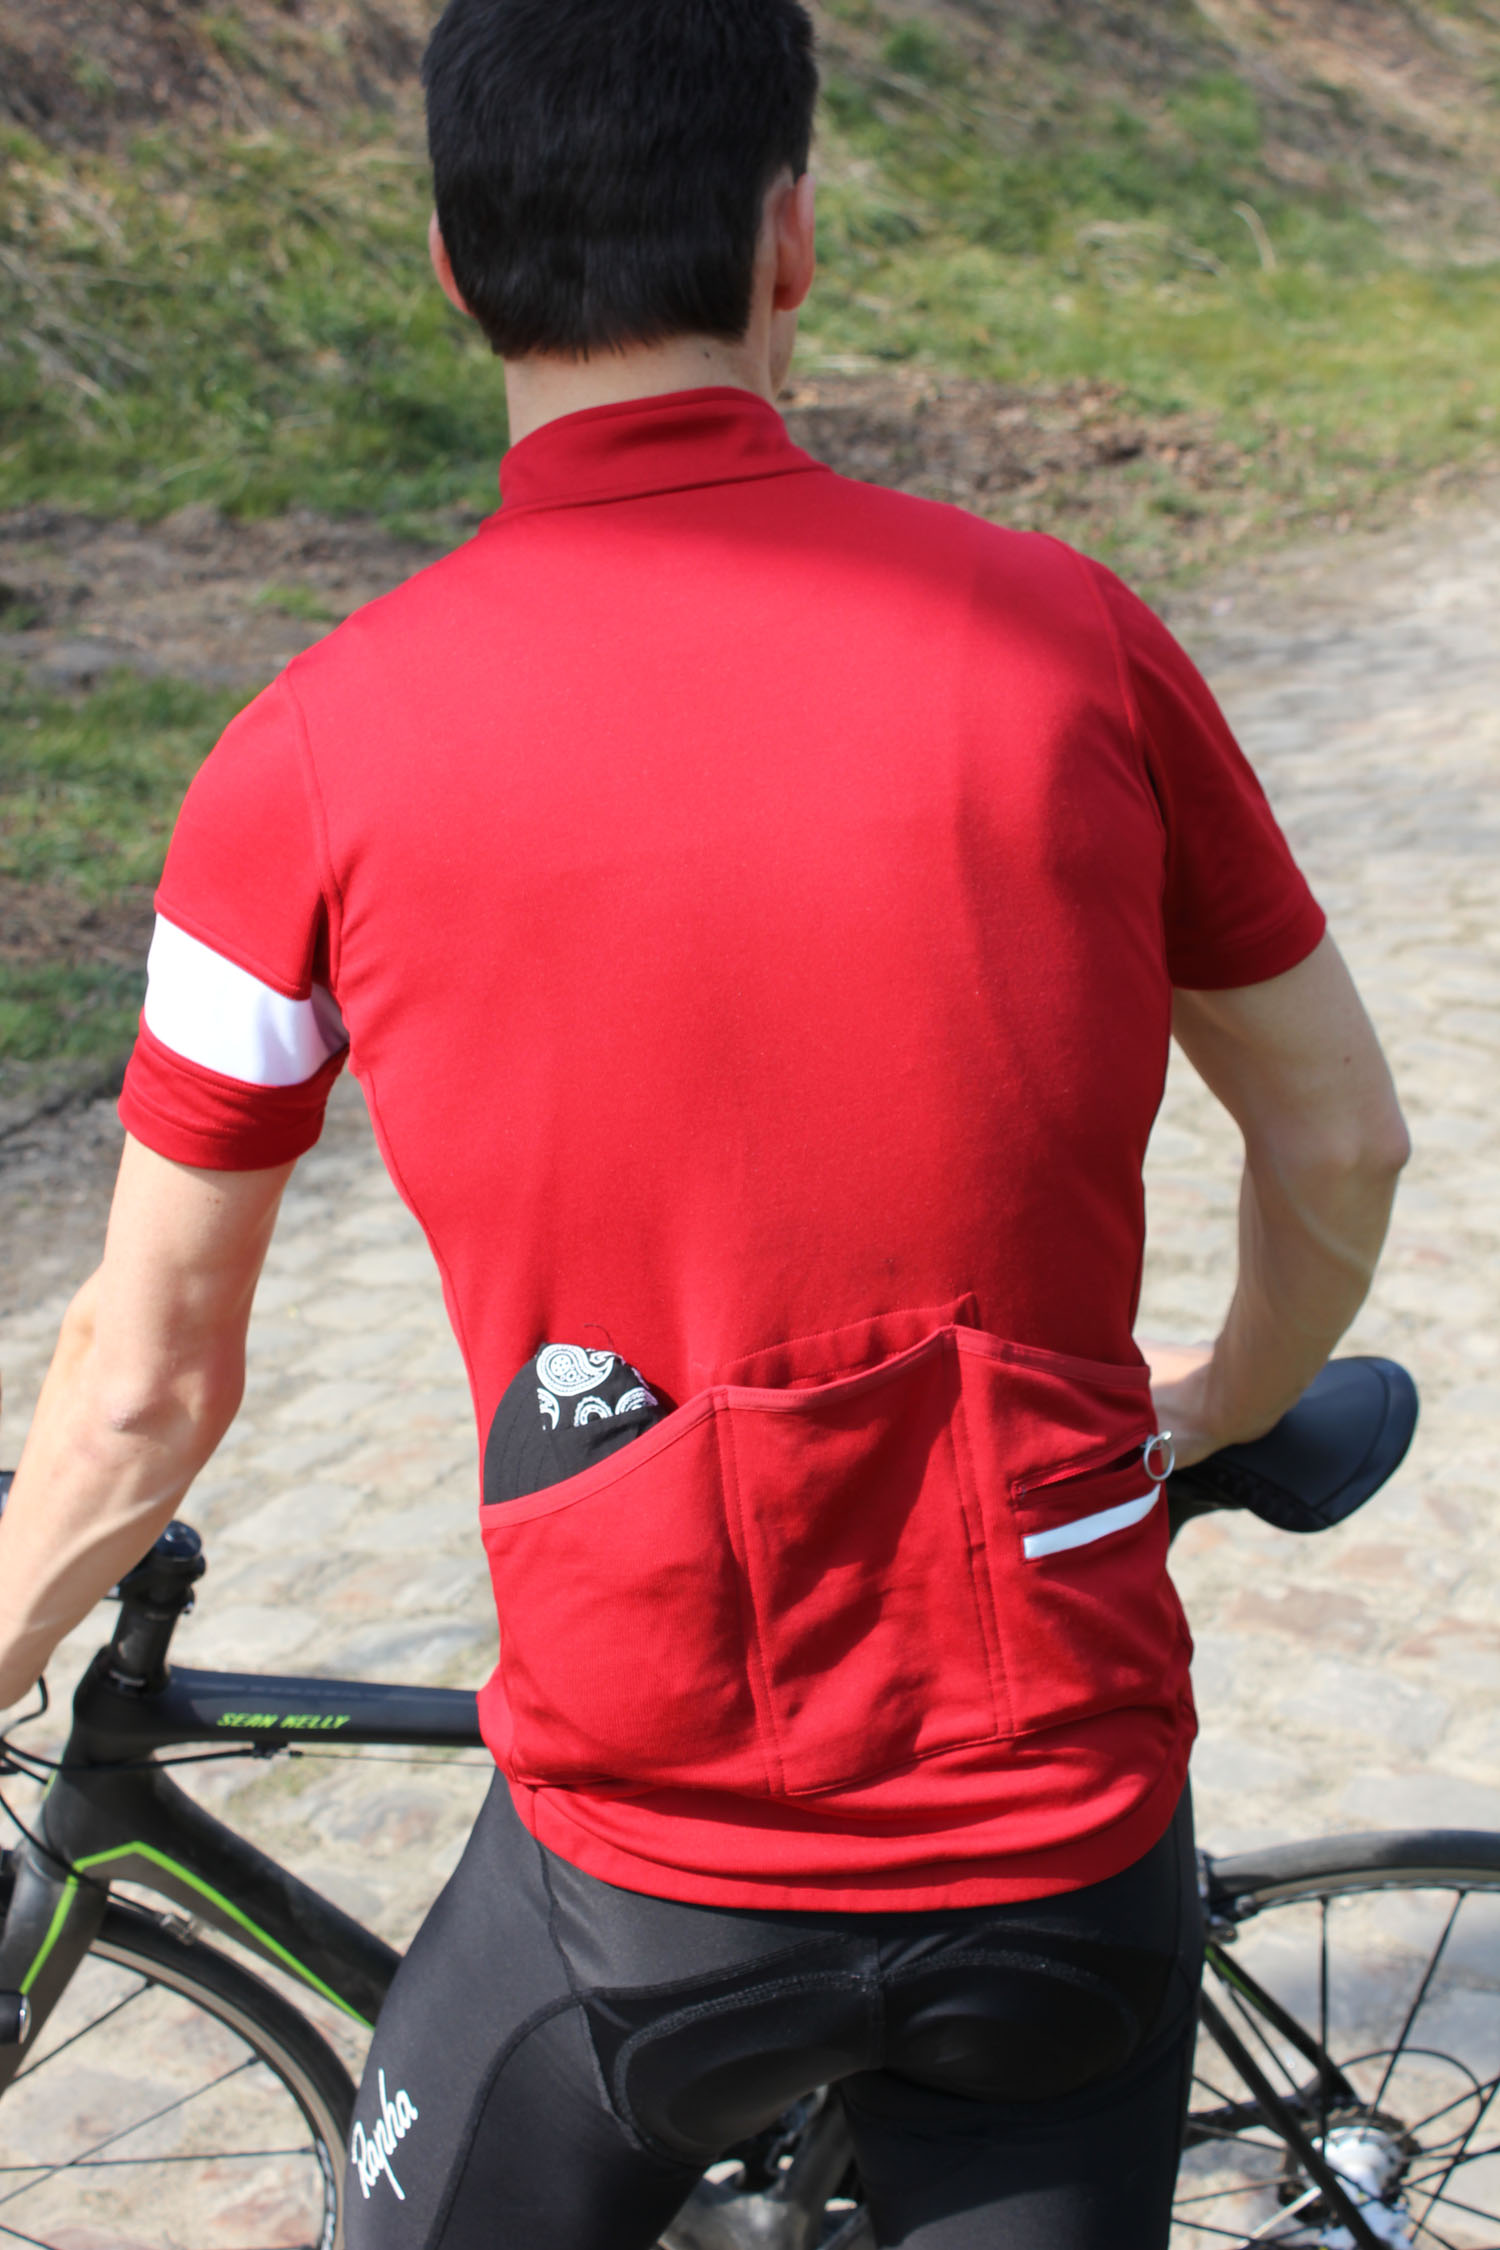 Rapha Classic Jersey £130 (includes arm warmers) - The Bike List 4b43dad86